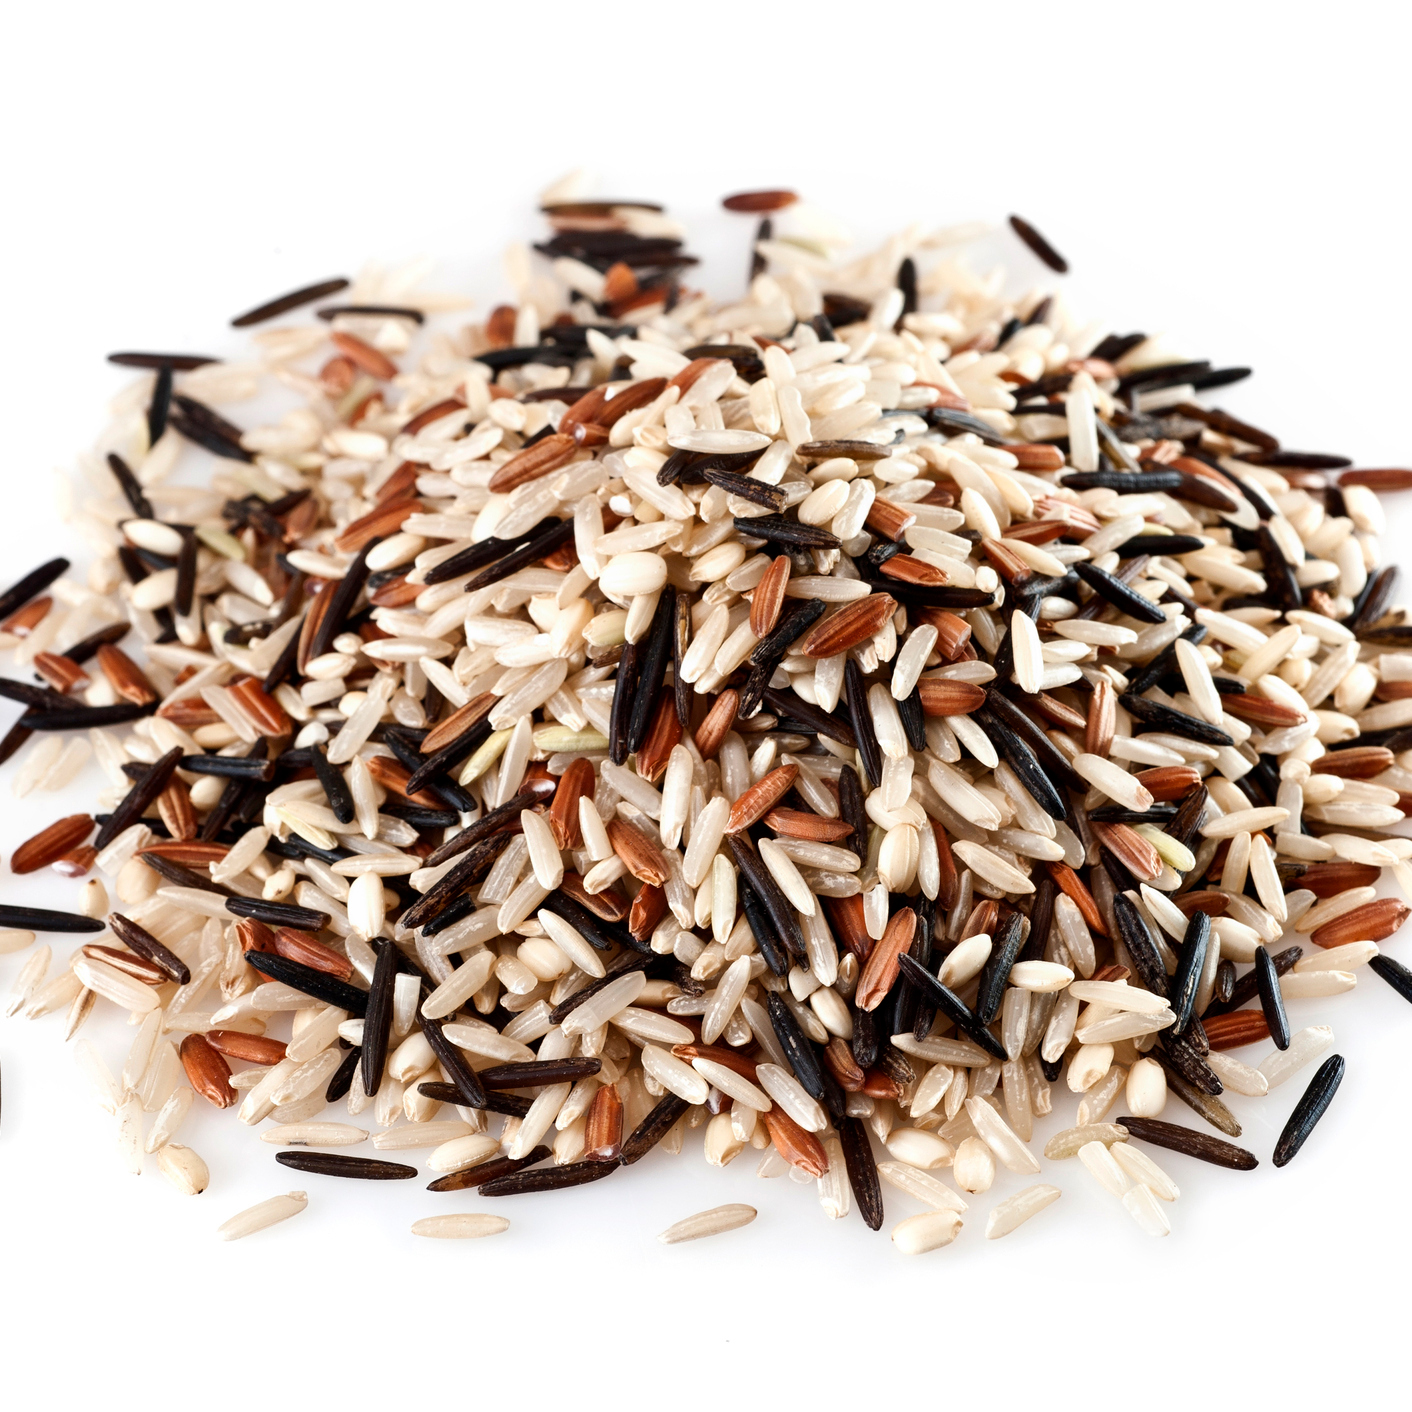 Types of grains - Wild rice (picture)